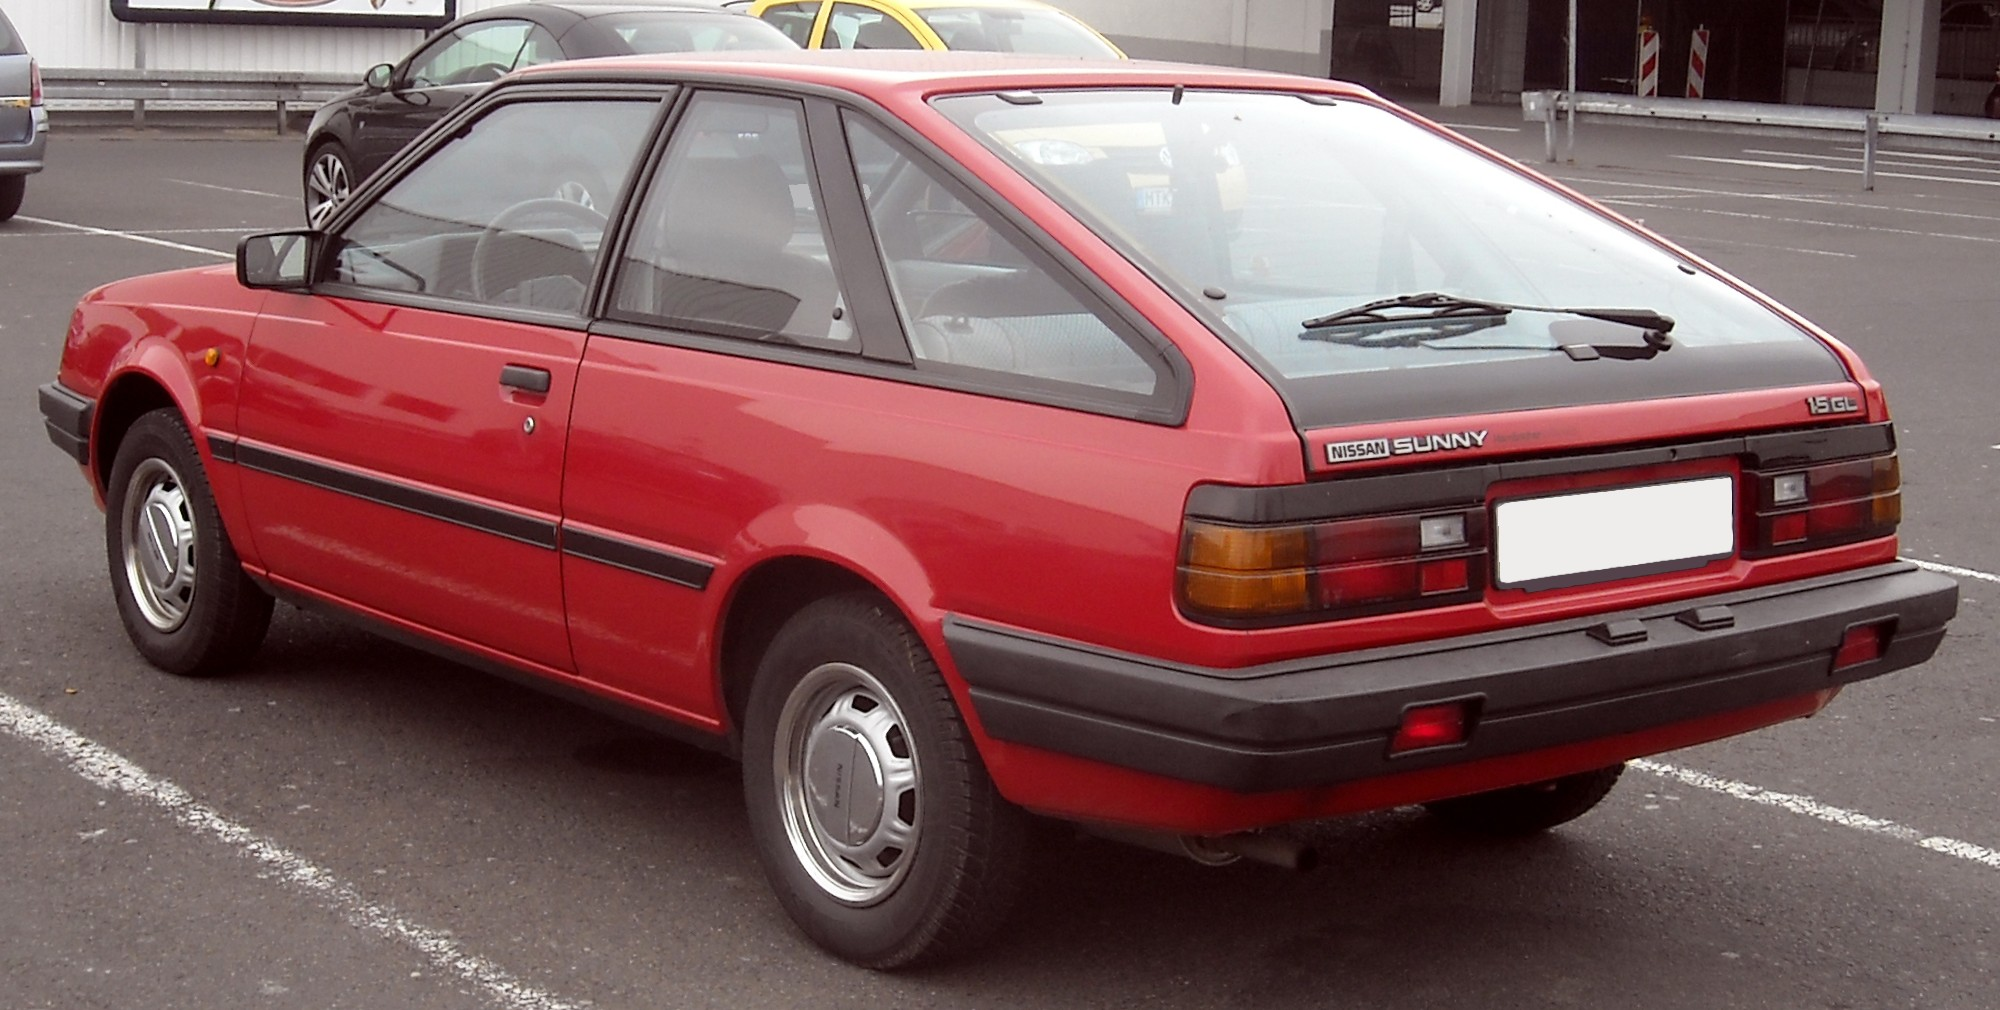 Nissan Sunny The name sentra is not used in japan, where it is currently known as the bluebird sylphy. nissan sunny